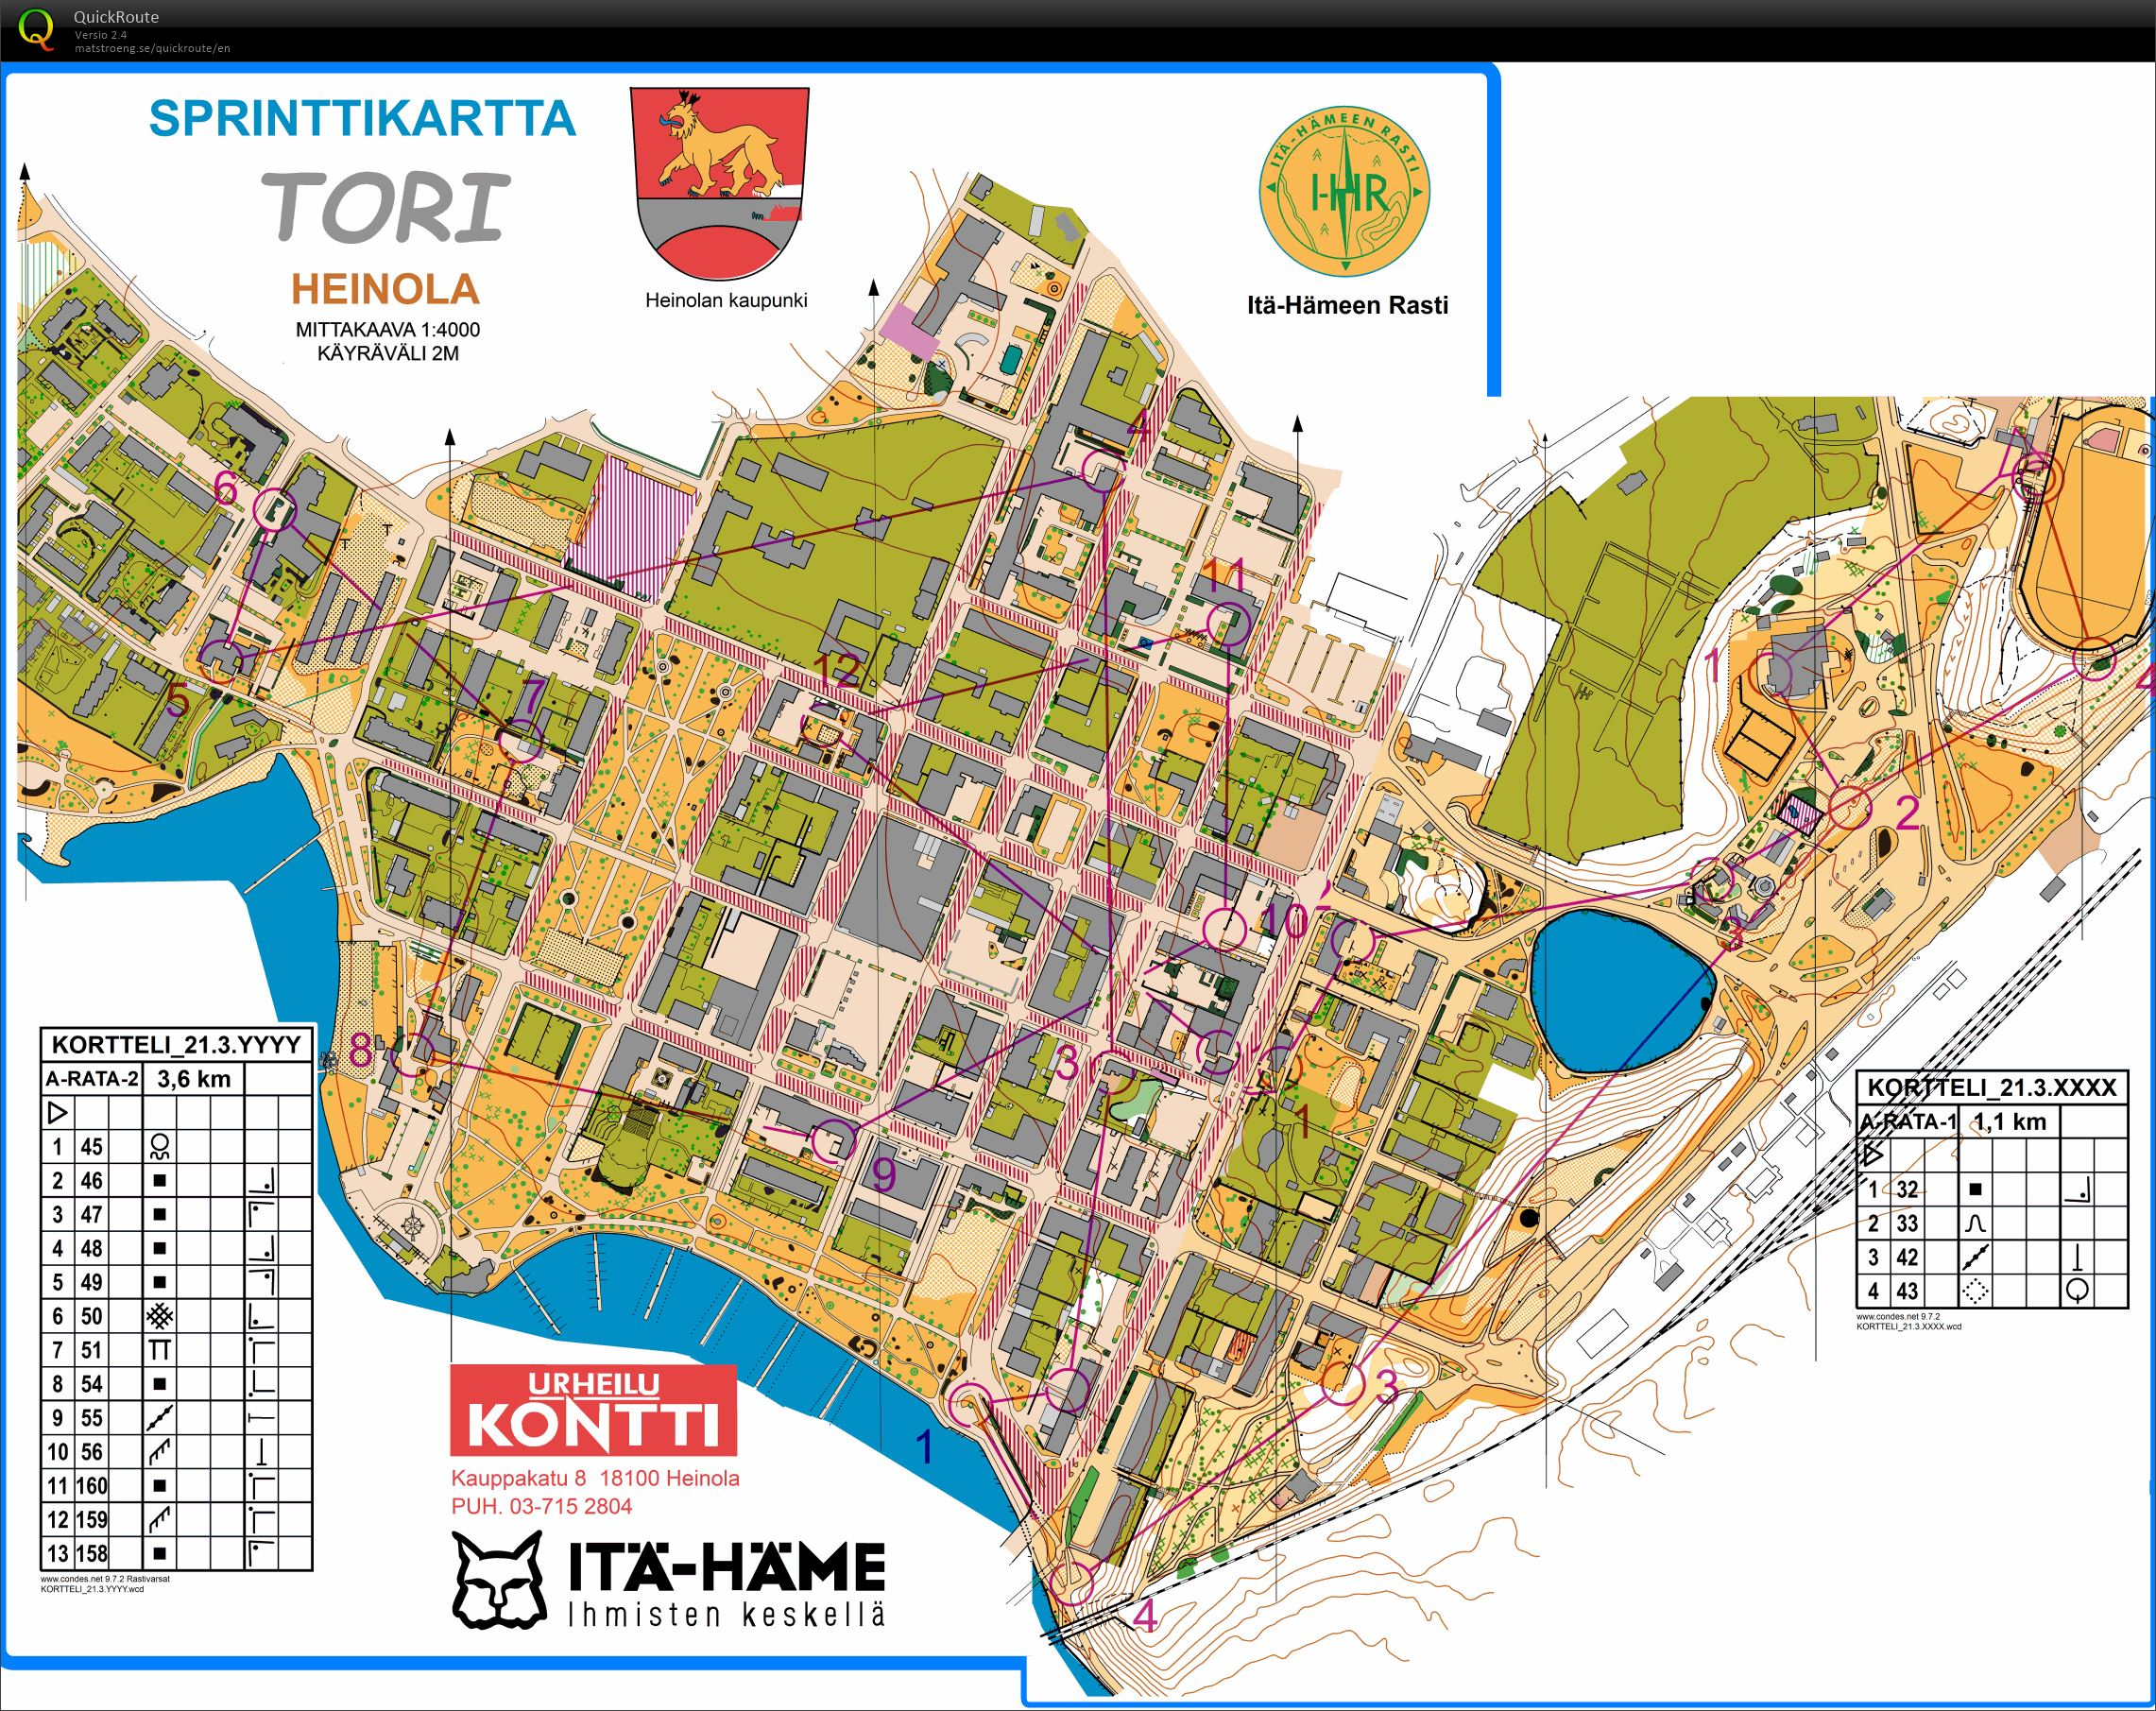 Korttelikuppi Heinola A March 21st 2018 Orienteering Map from